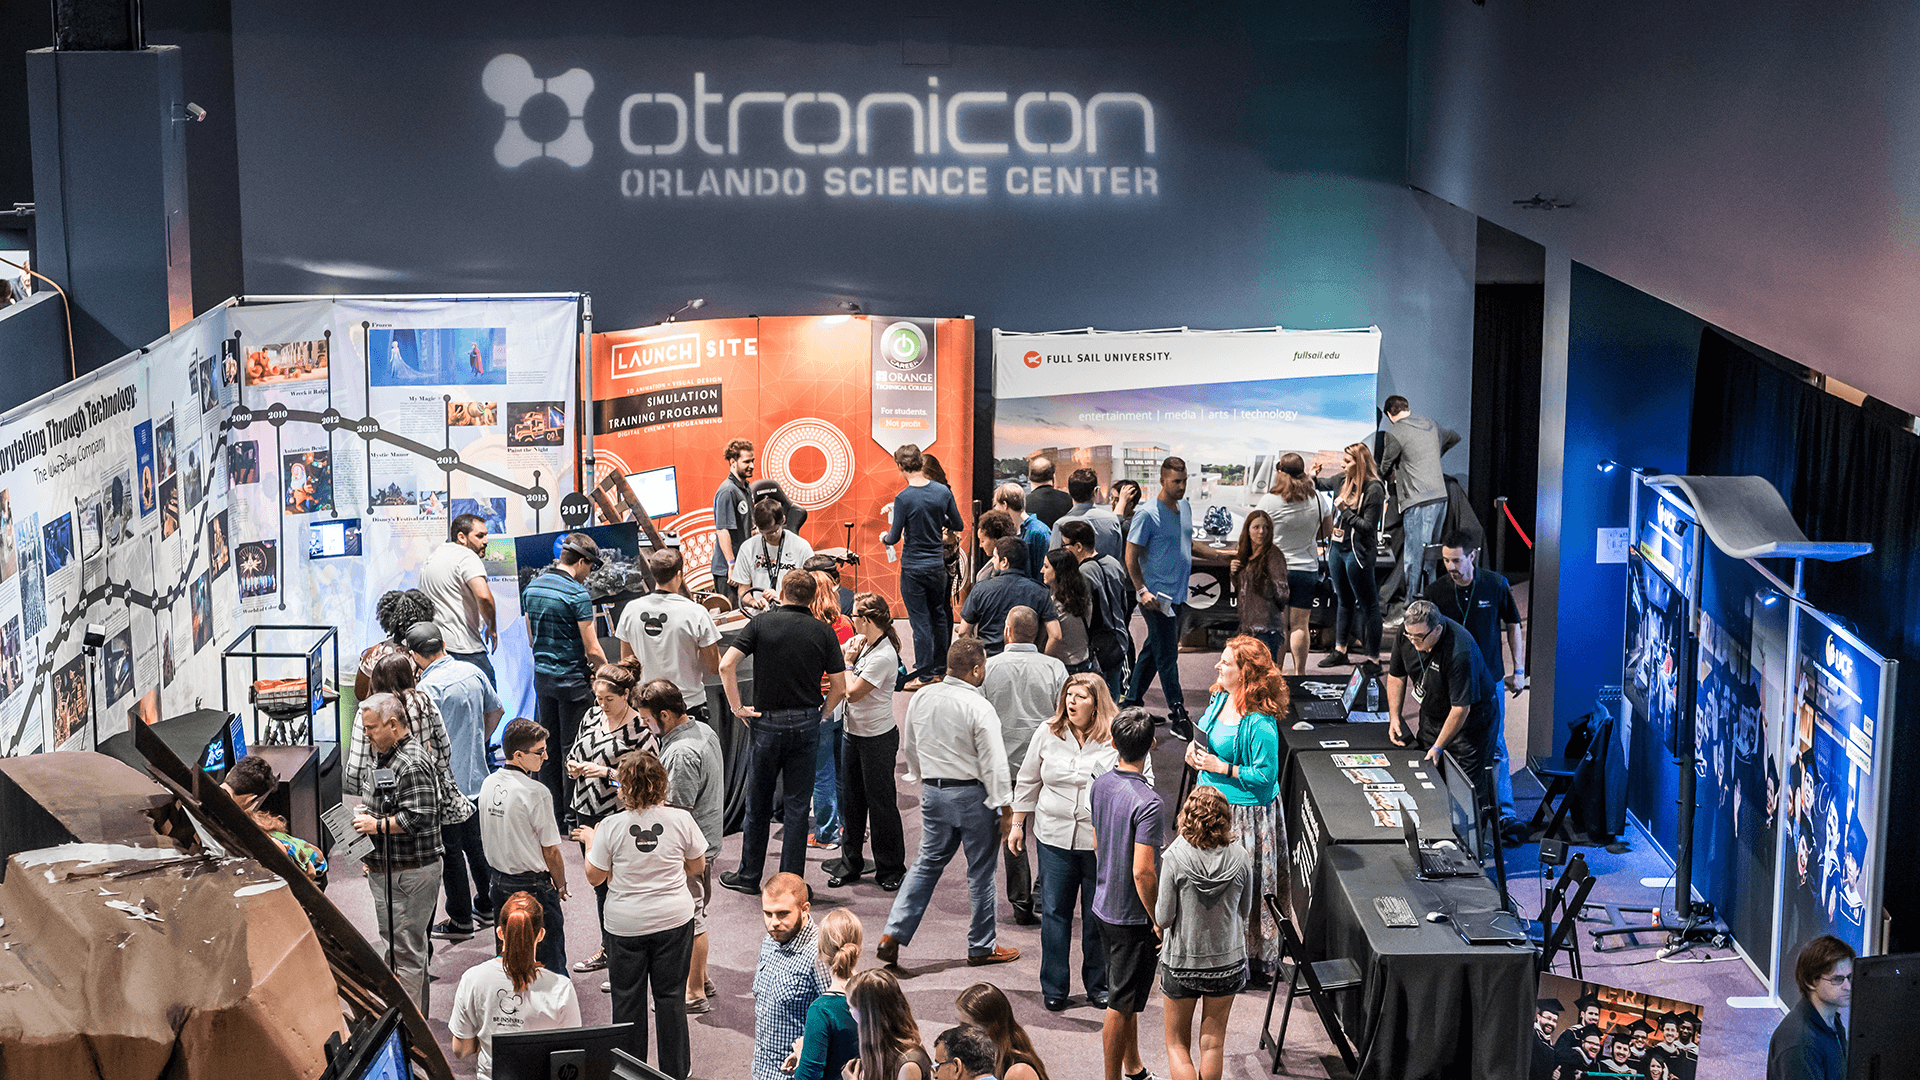 Guests at Otronicon